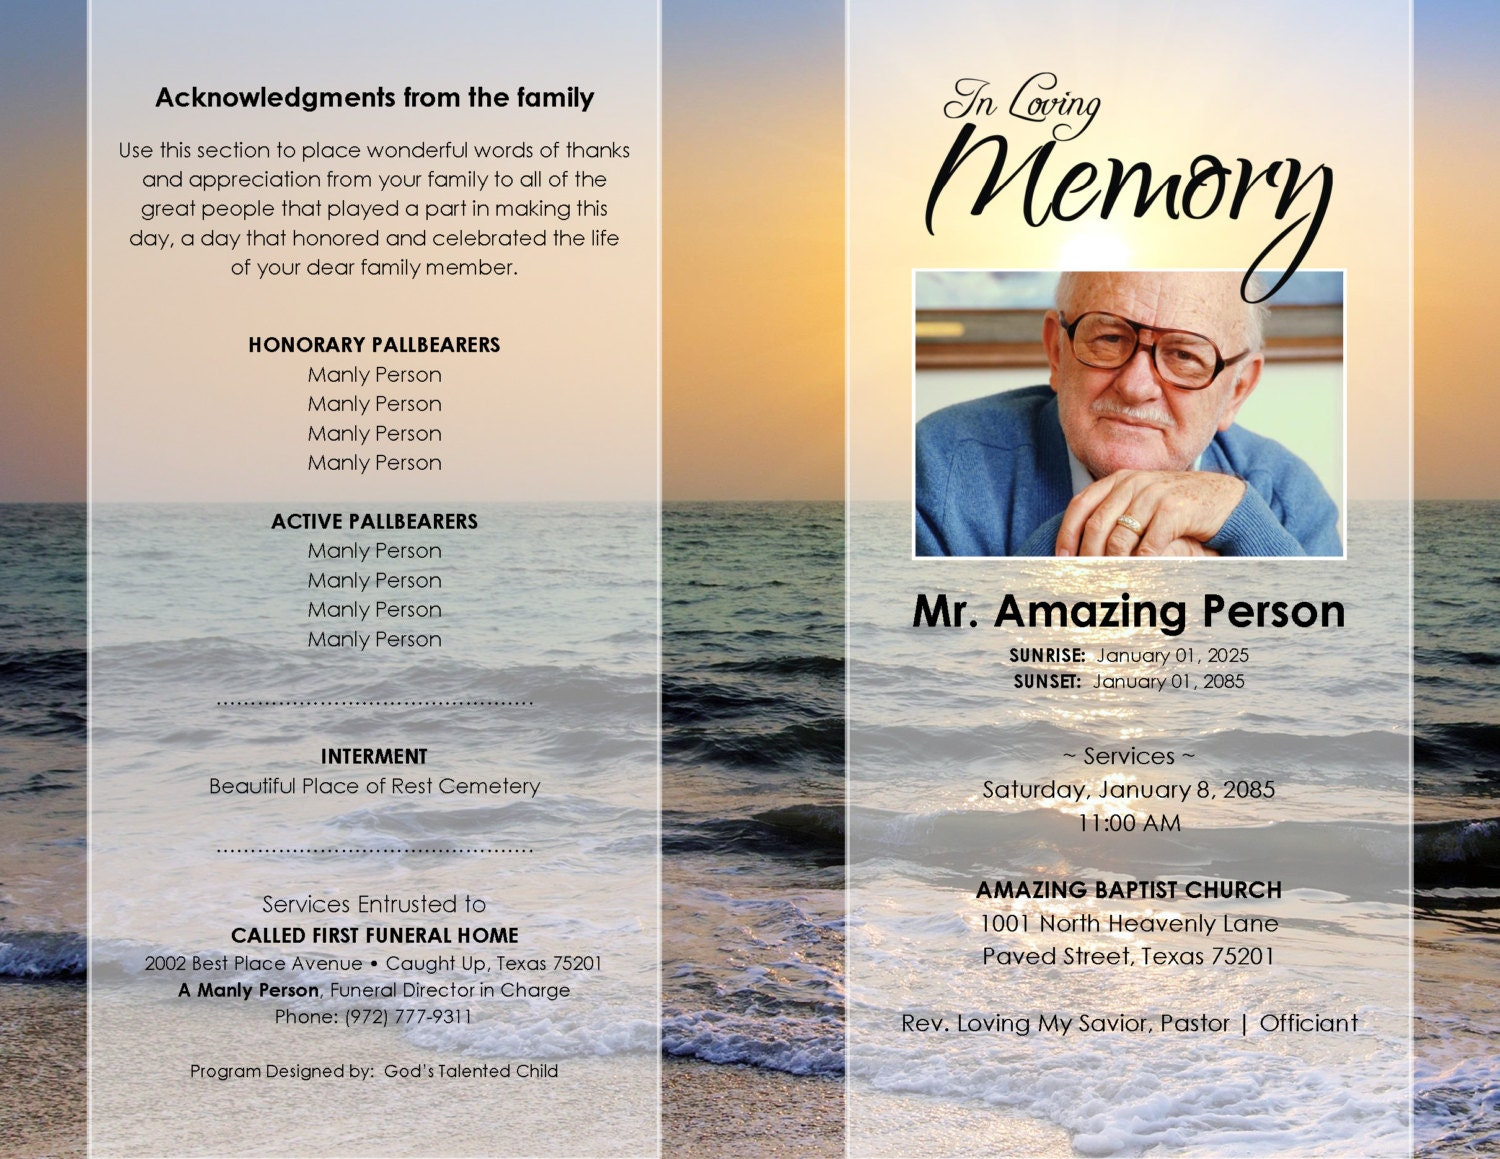 Announcement Template Word private memorial or funeral archives – Funeral Announcements Template